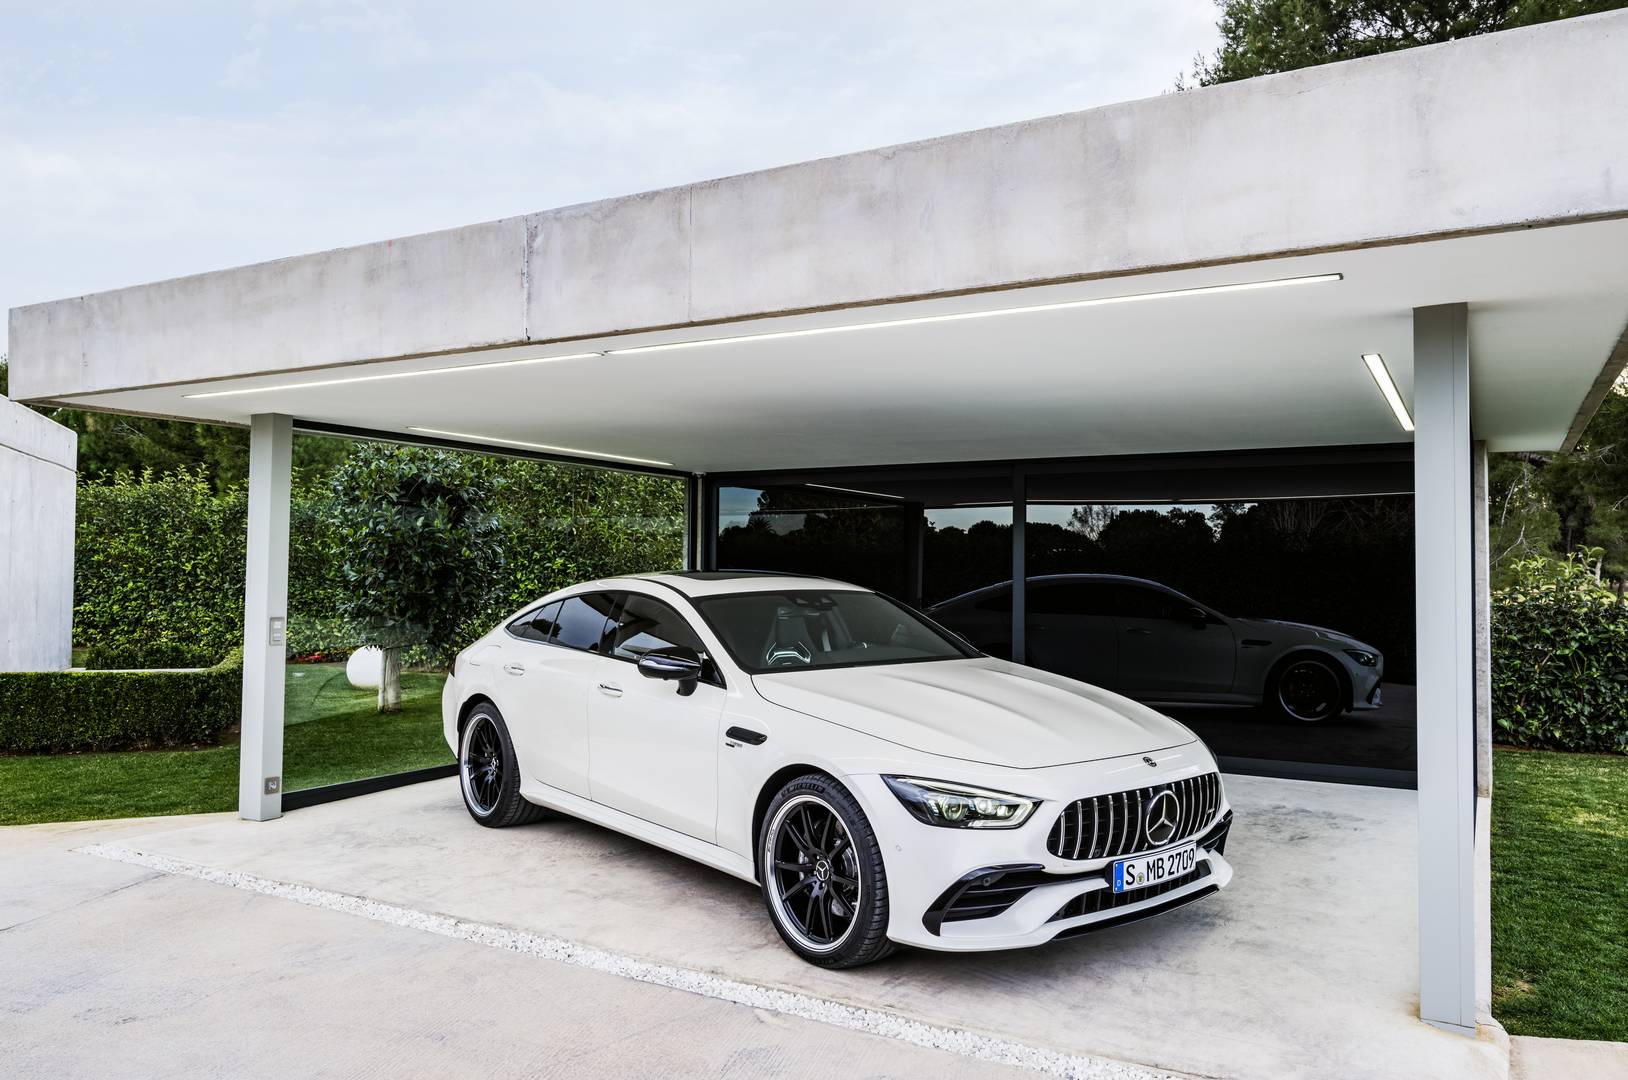 Official 2019 Mercedes Amg Gt 4 Door Coupe Gt 53 Gt 63 Amp Gt 63 S Gtspirit